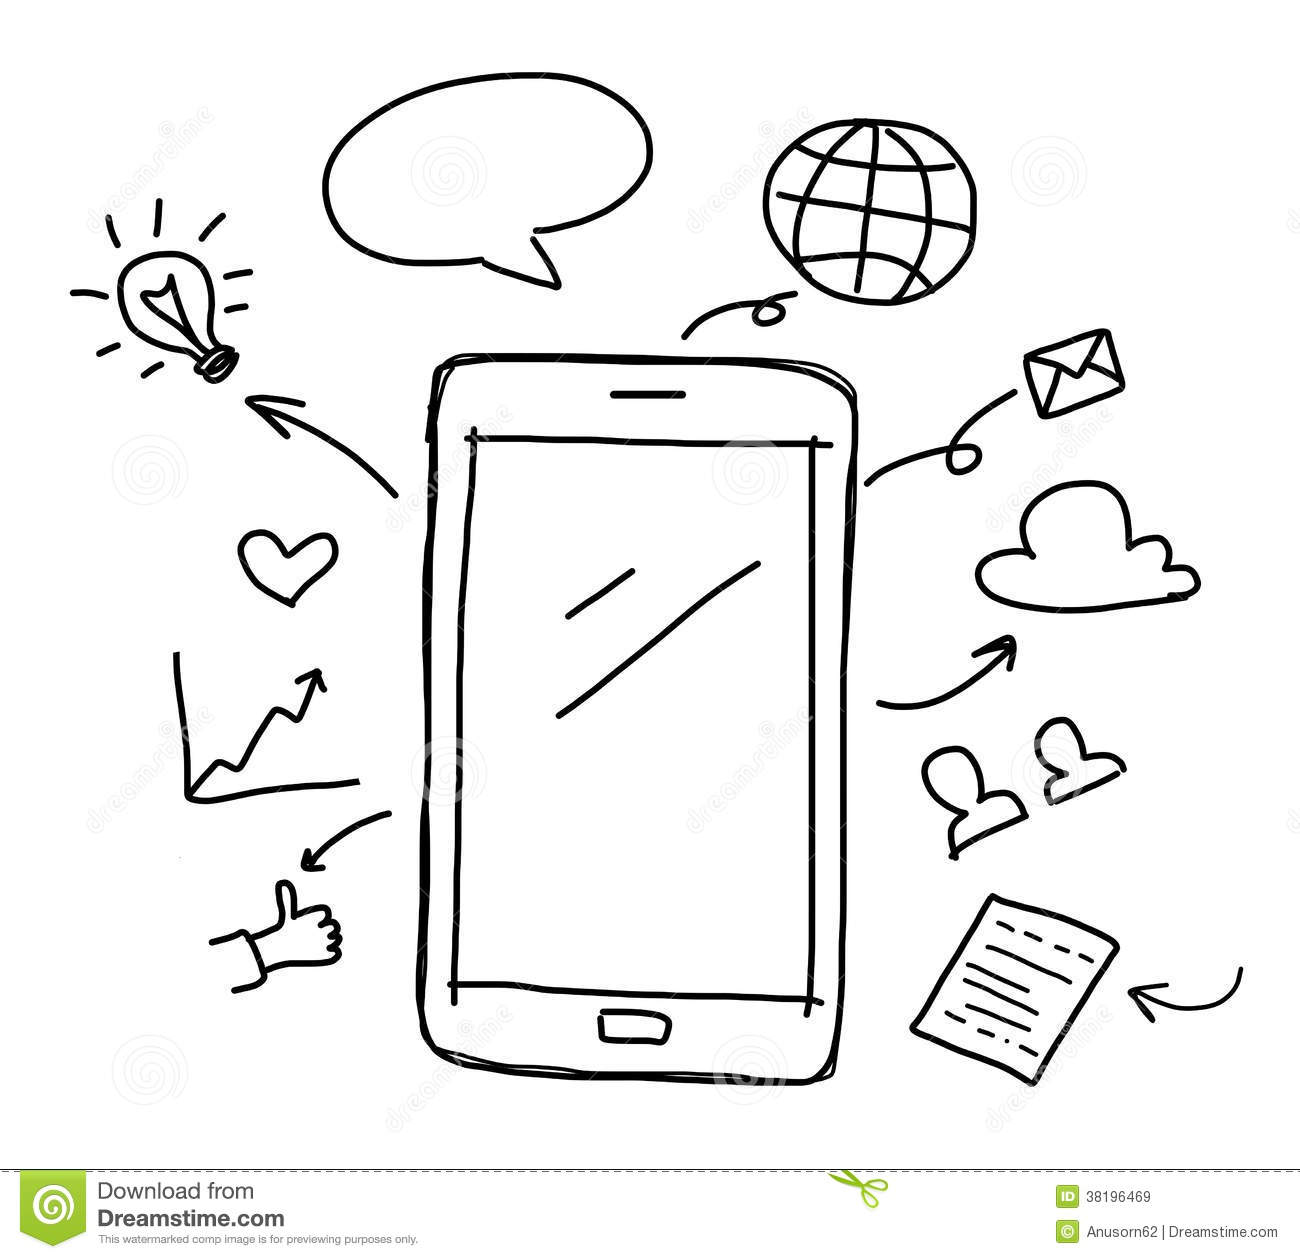 Http Www Dreamstime Com Royalty Free Stock Images Hand Drawing Smart Phone Social Media Concept Image38196469